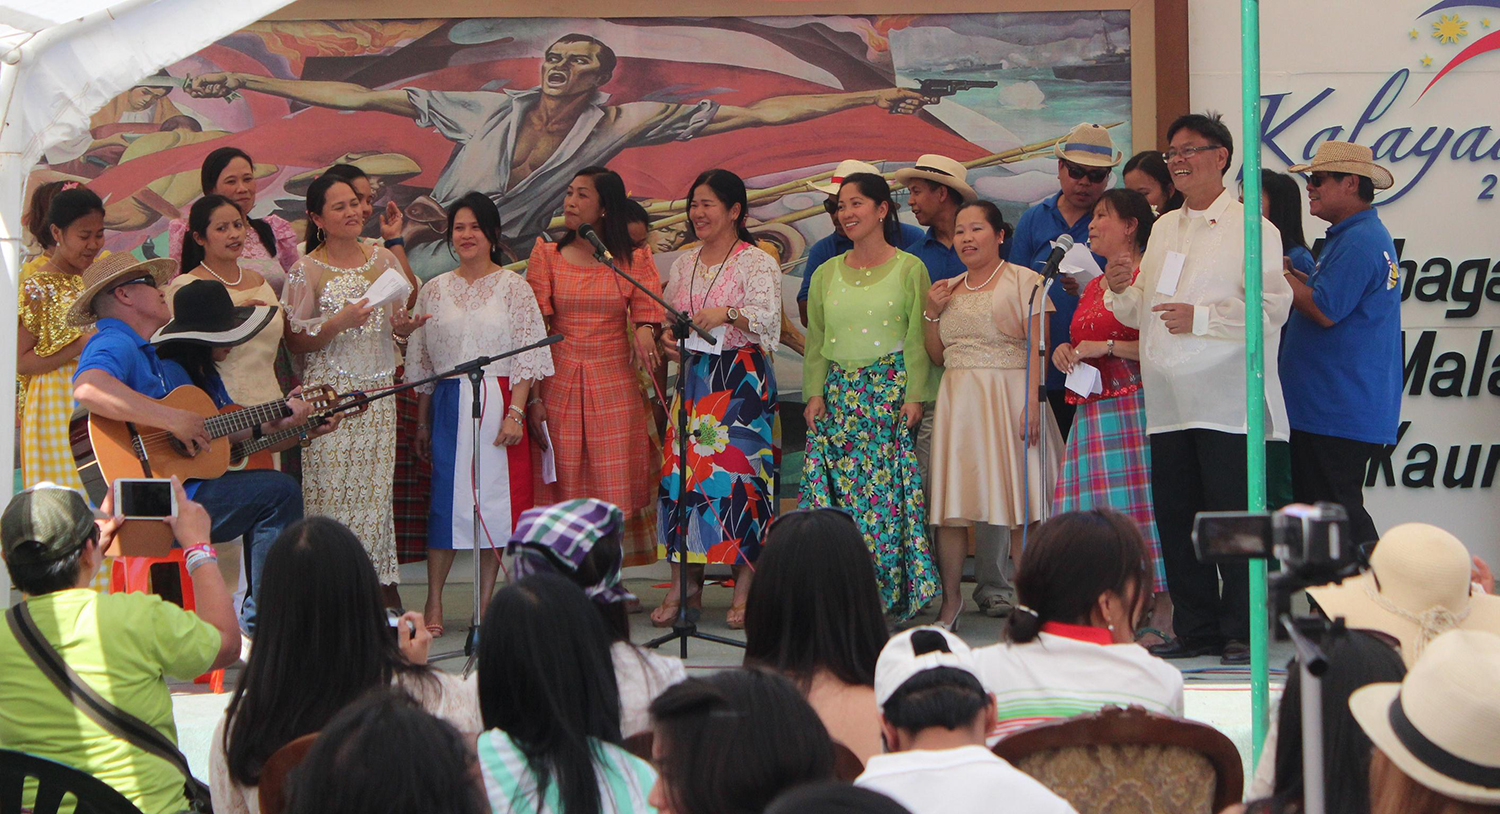 The Filipino community in Greece celebrated the 115th Anniversary of Philippine Independence last June 23, 2013 at the Fokianos National Gymnasium in Zappieo, Athens.   (Source: www.philembathens.gr)